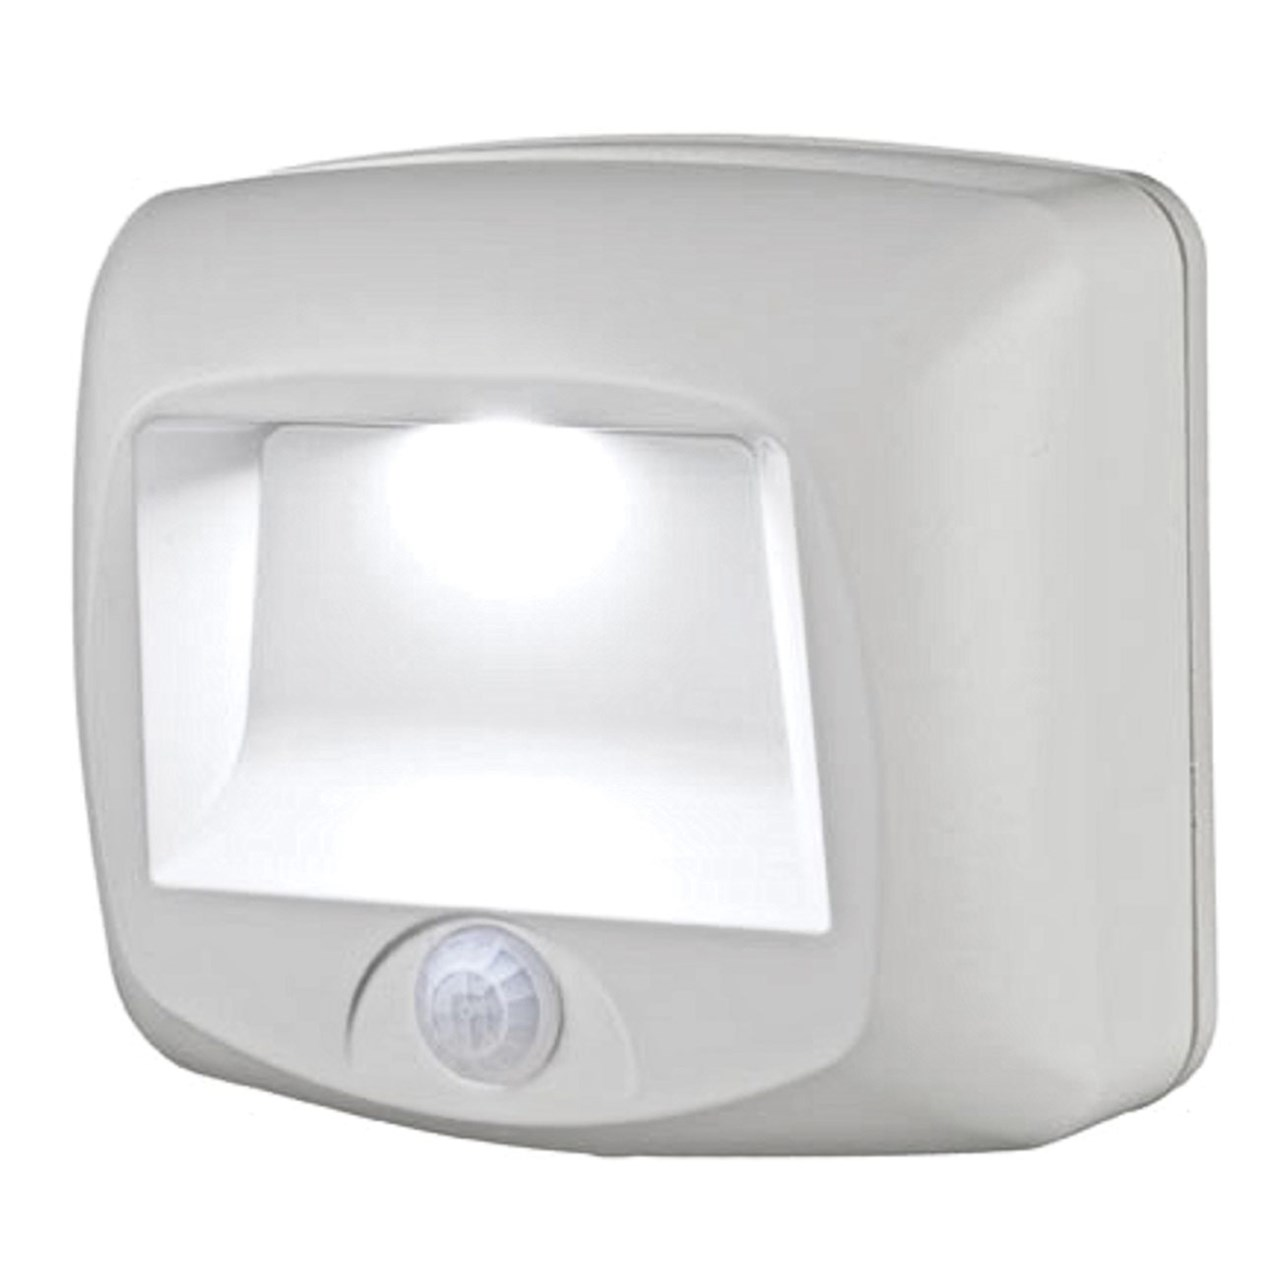 Contemporary Wireless Motion Detector Mold Everything